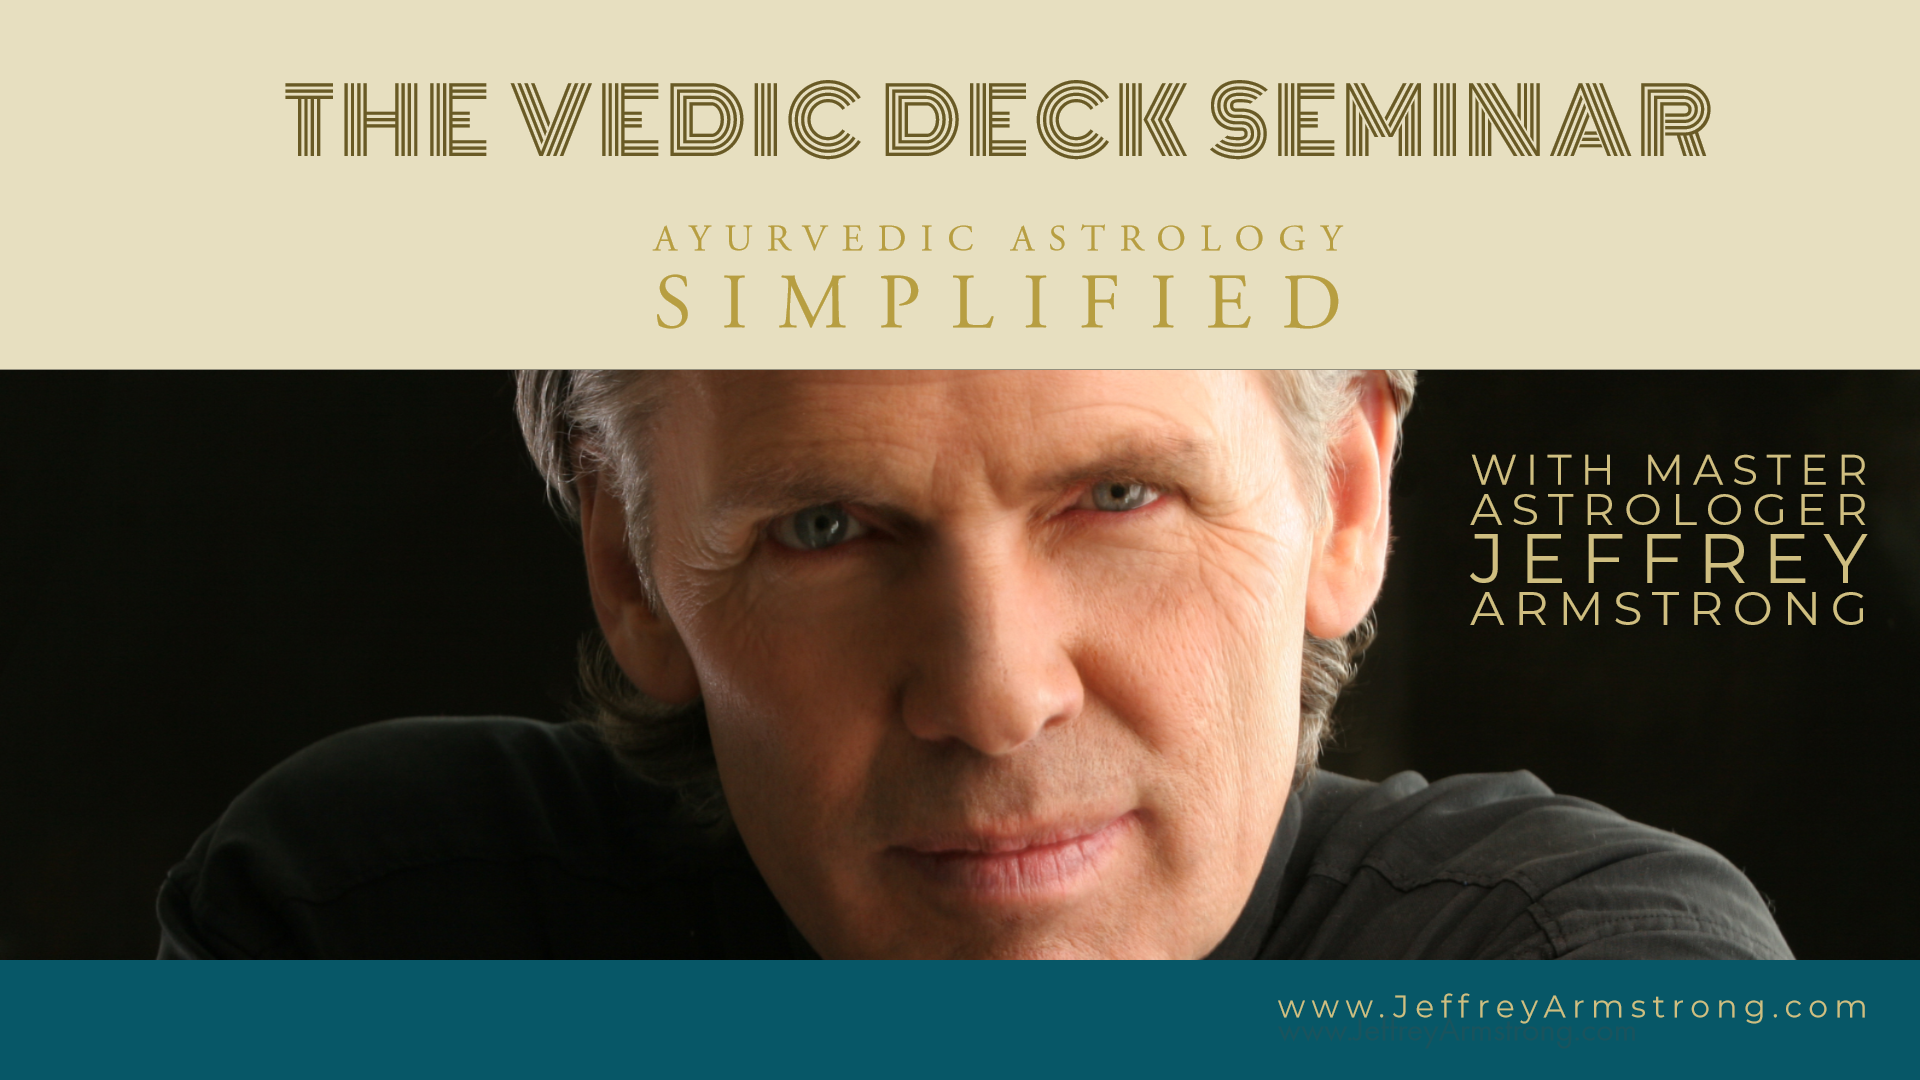 Introduction to AyurVedic Astrology